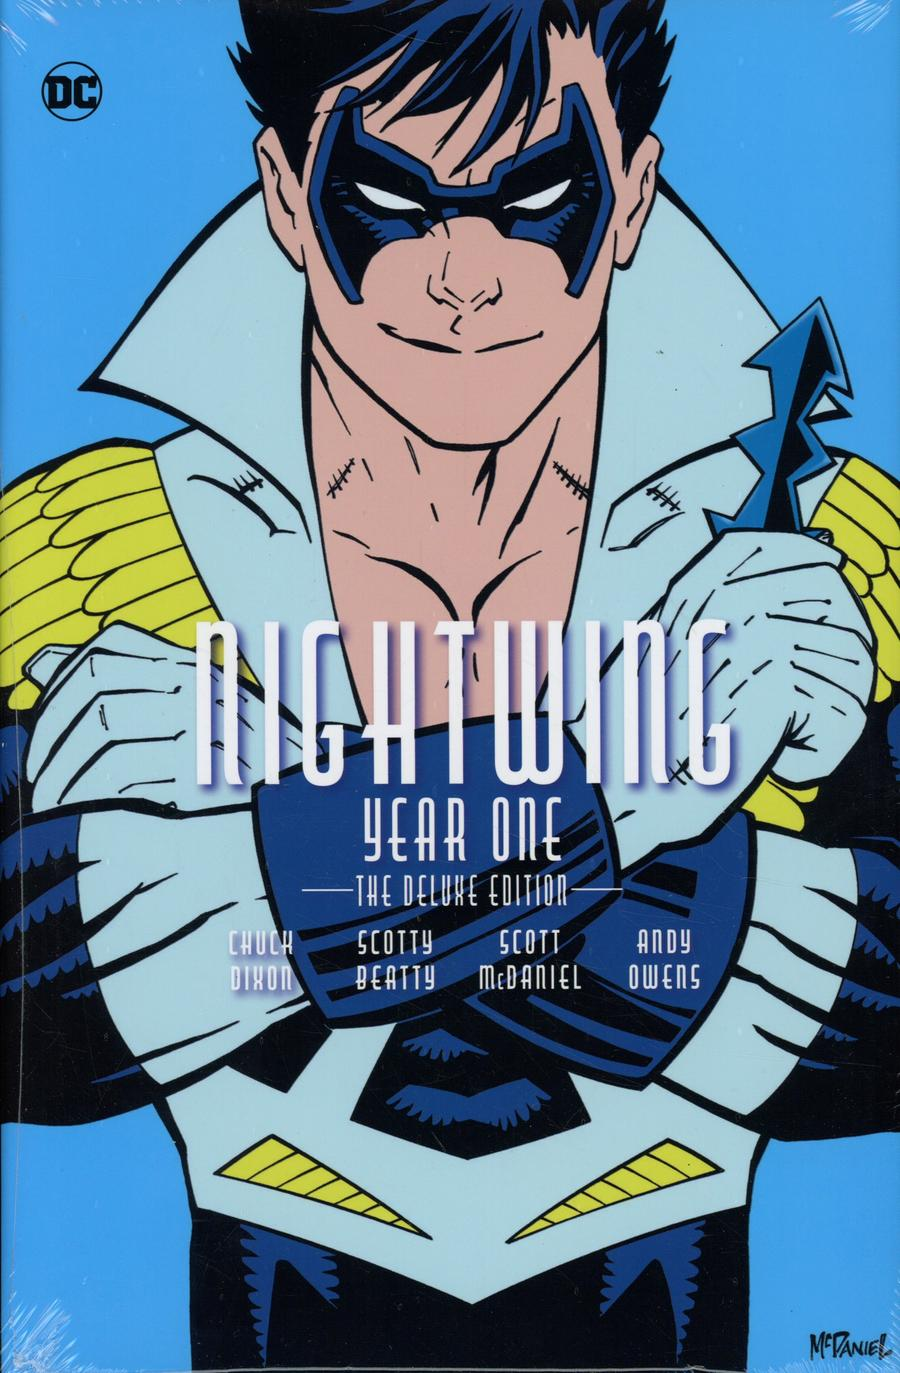 Nightwing Year One Deluxe Edition HC